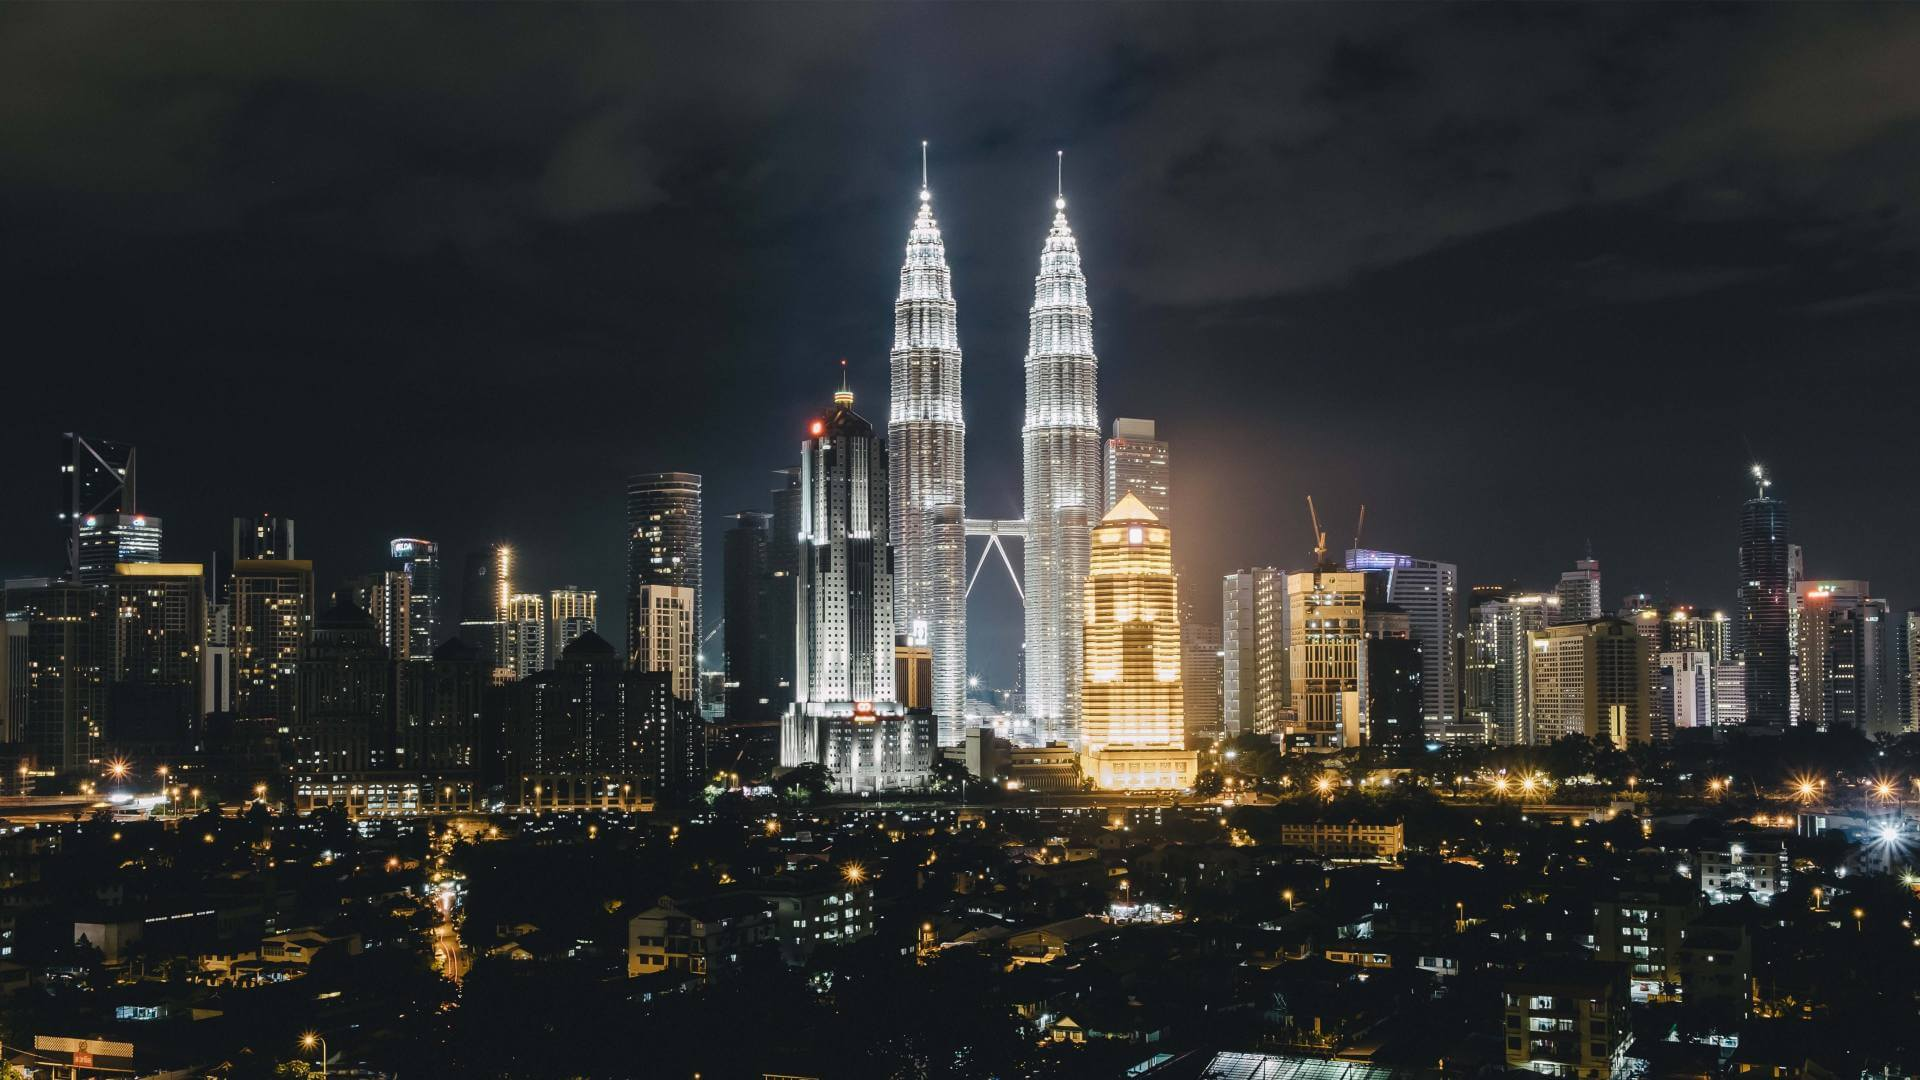 The Petronas Towers are illuminated and surrounded by other buildings during night in Kuala Lumpur.